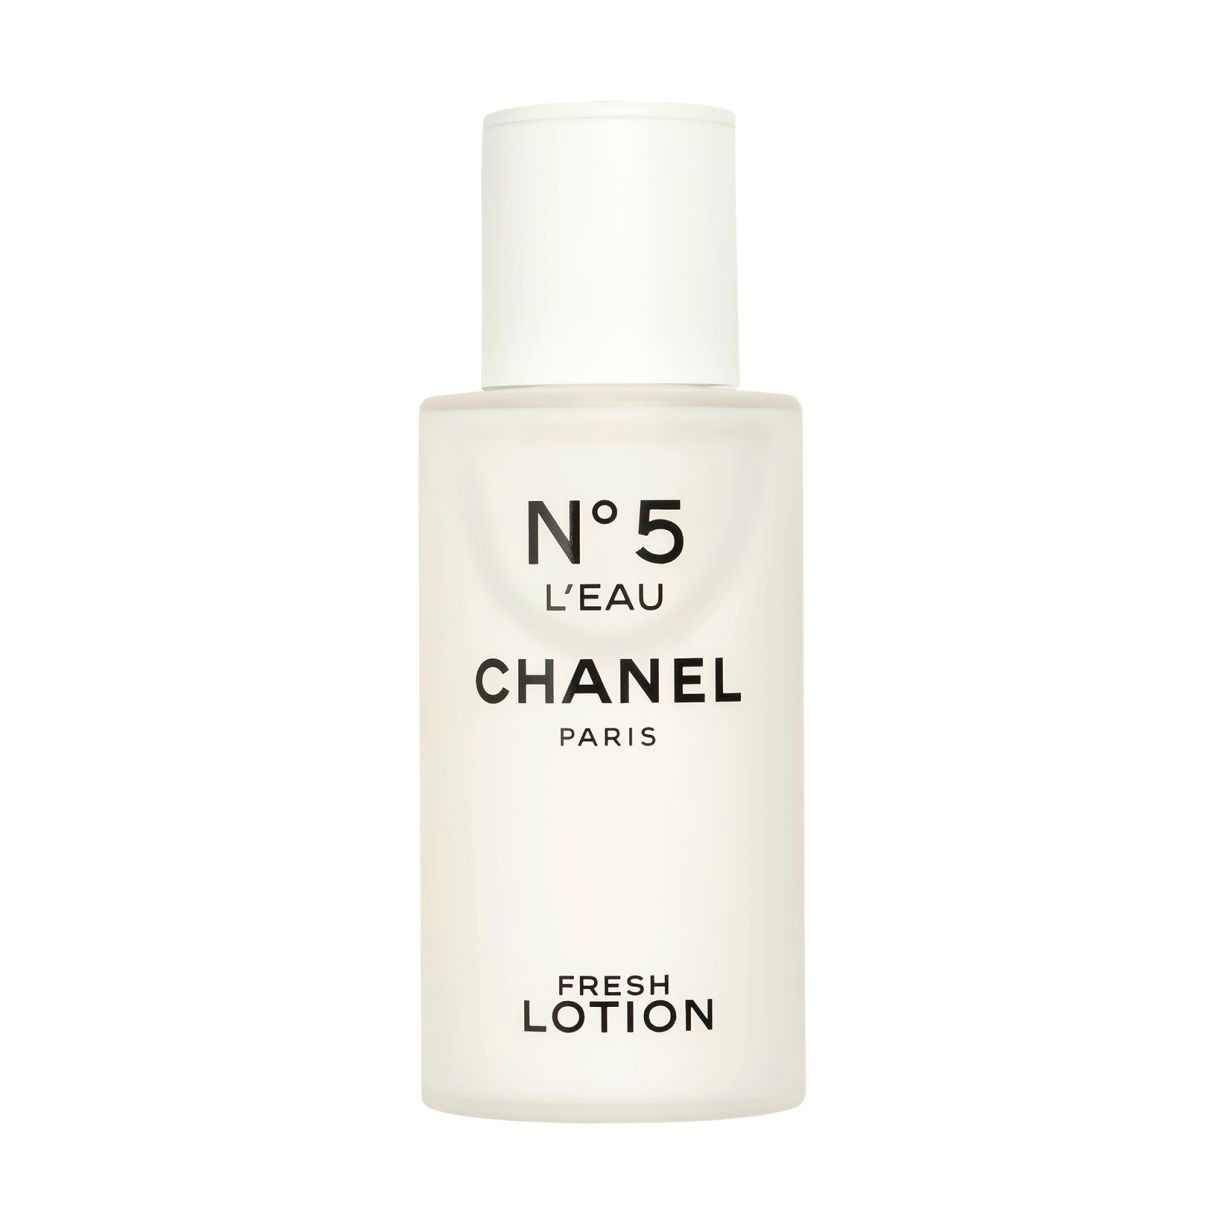 N°5 L'EAU N°5 L'EAU FRESH LOTION 100ml